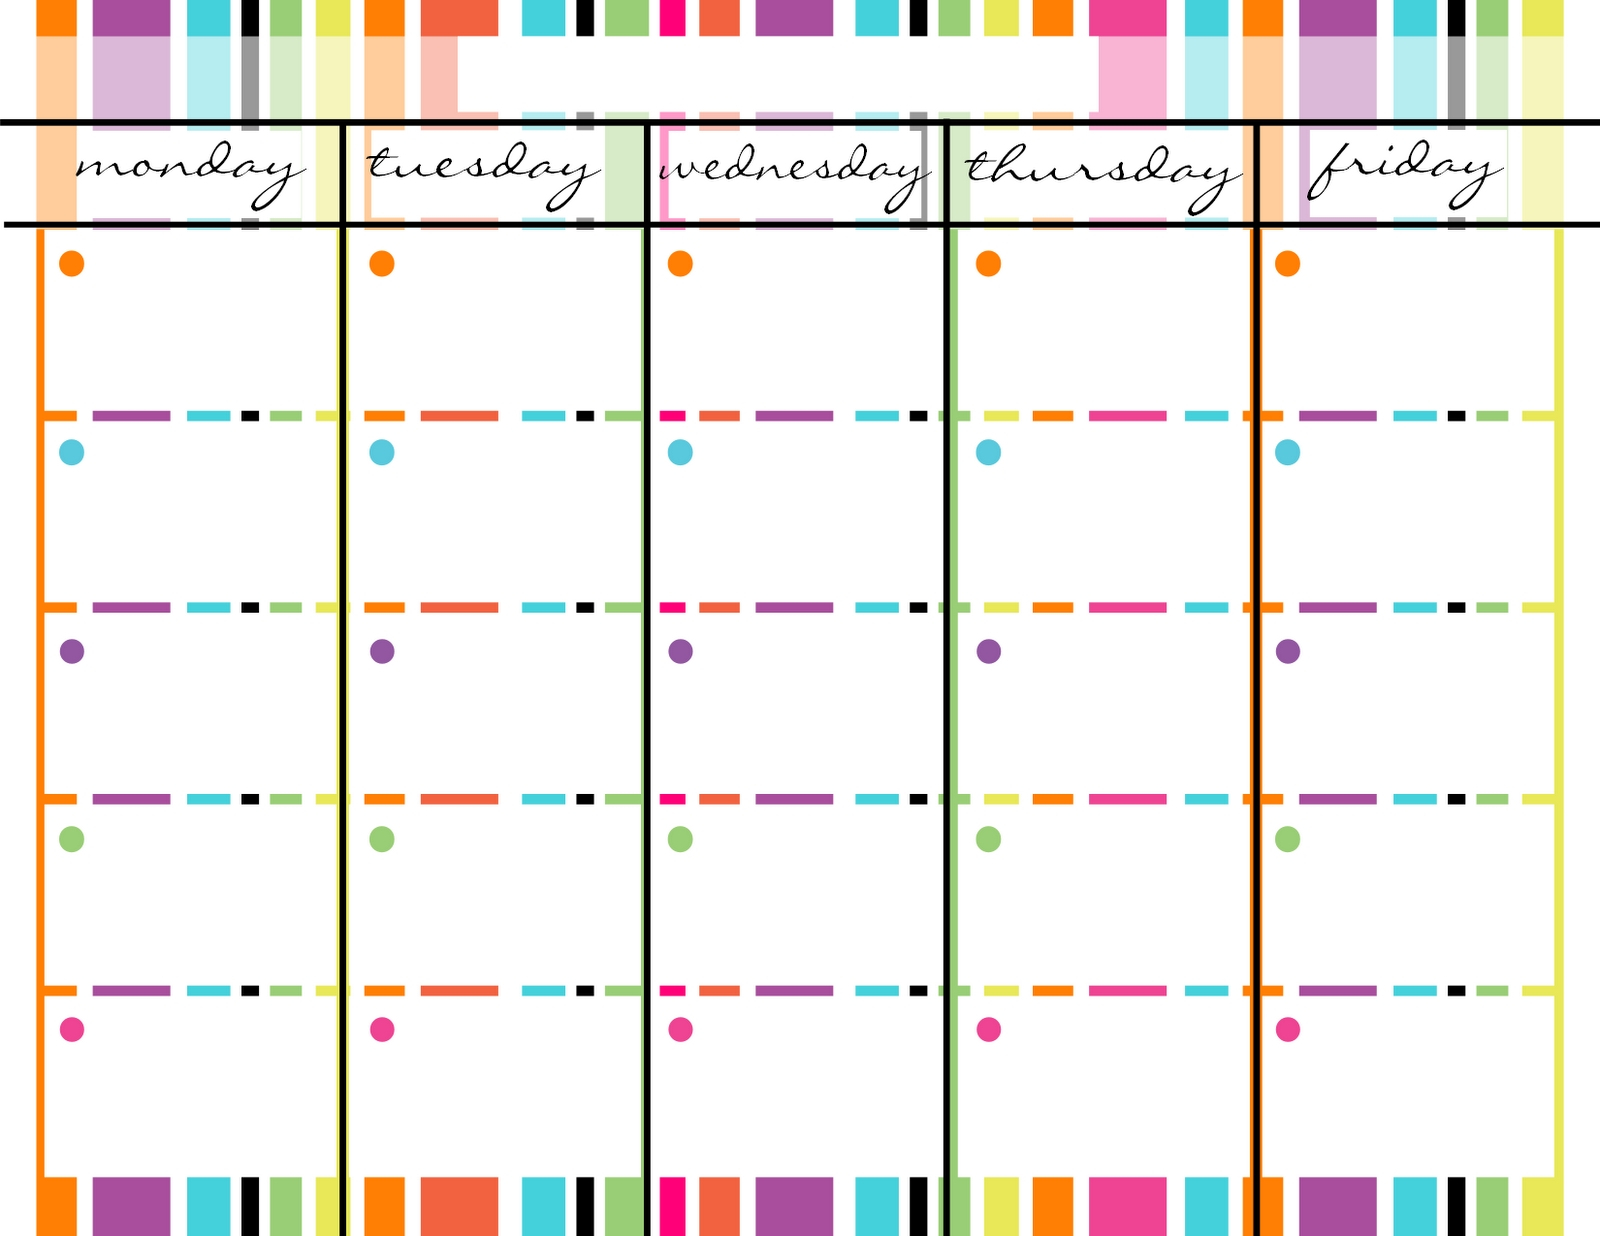 Monday To Friday Schedule Template | Calendar Template Printable Calendar Monday- Friday